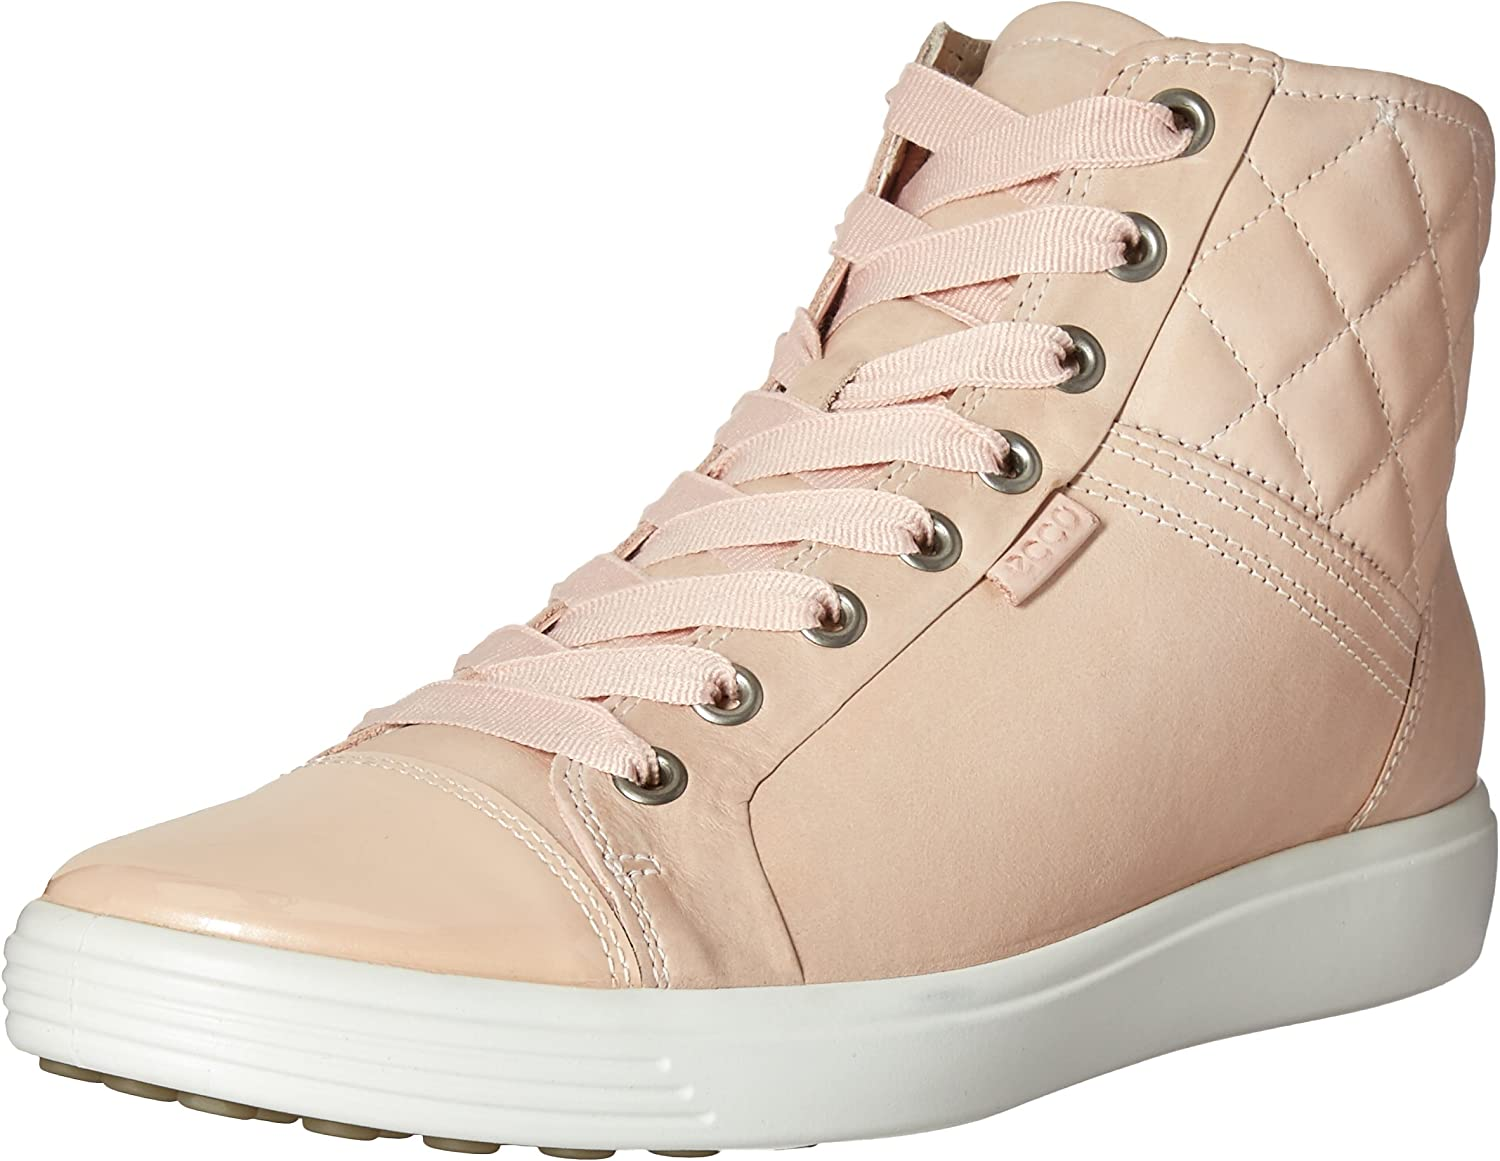 Soft 7 Quilted High Top Fashion Sneaker